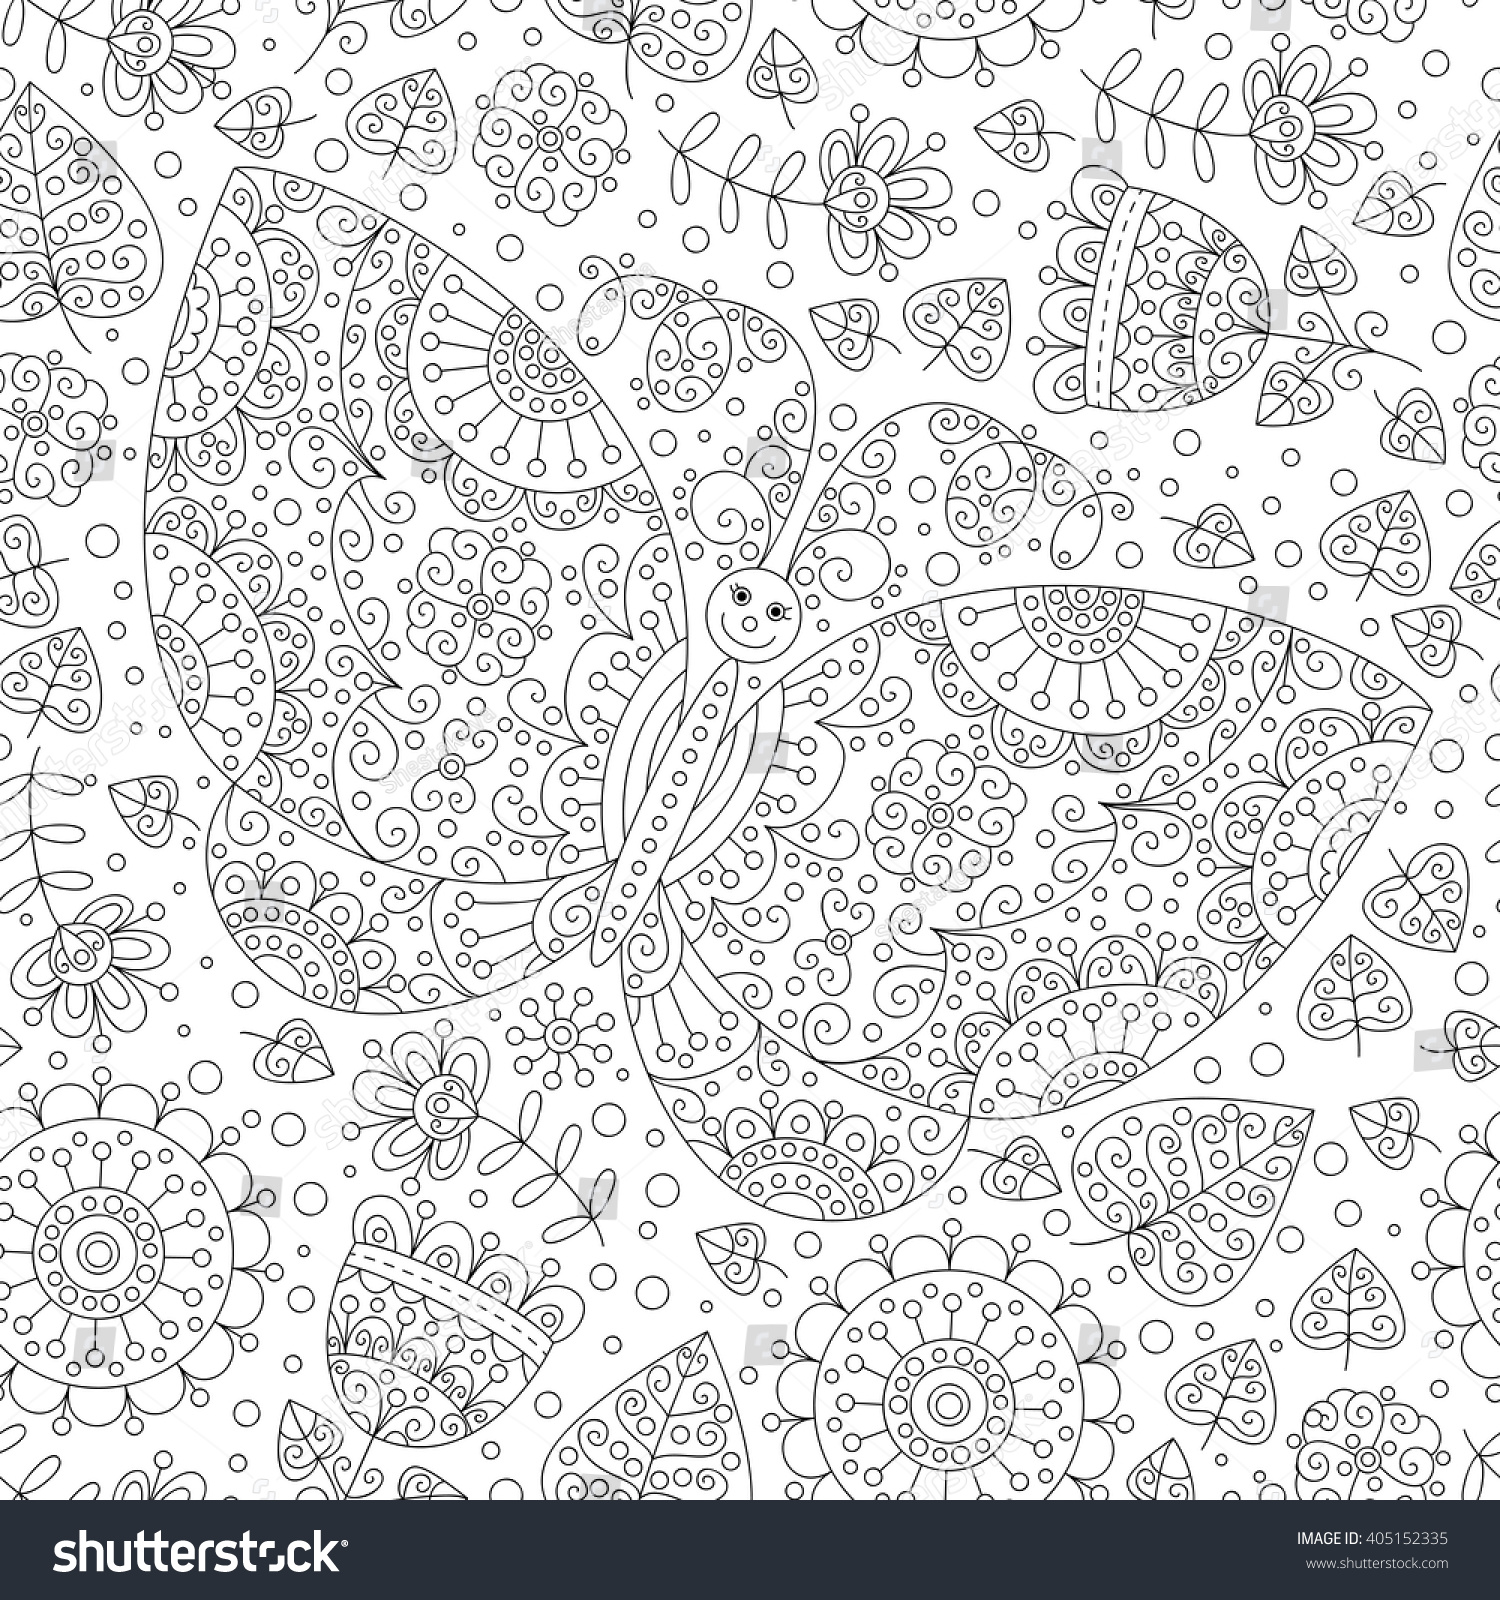 stock vector vector butterfly and flowers monochrome seamless pattern black and white background coloring page